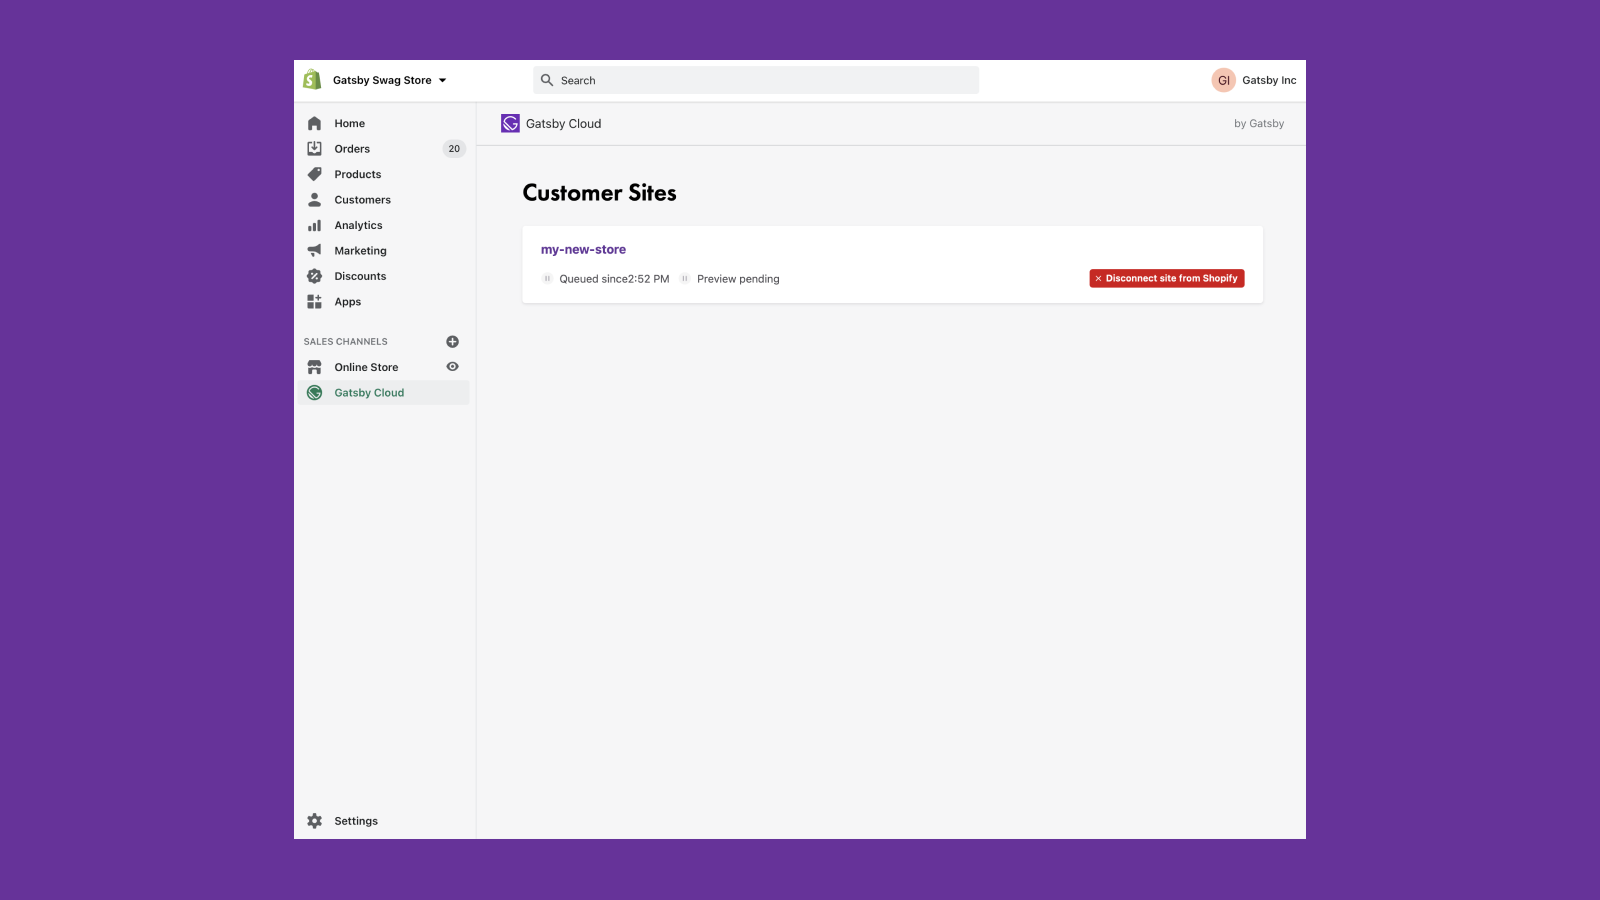 View site and build status from within Shopify